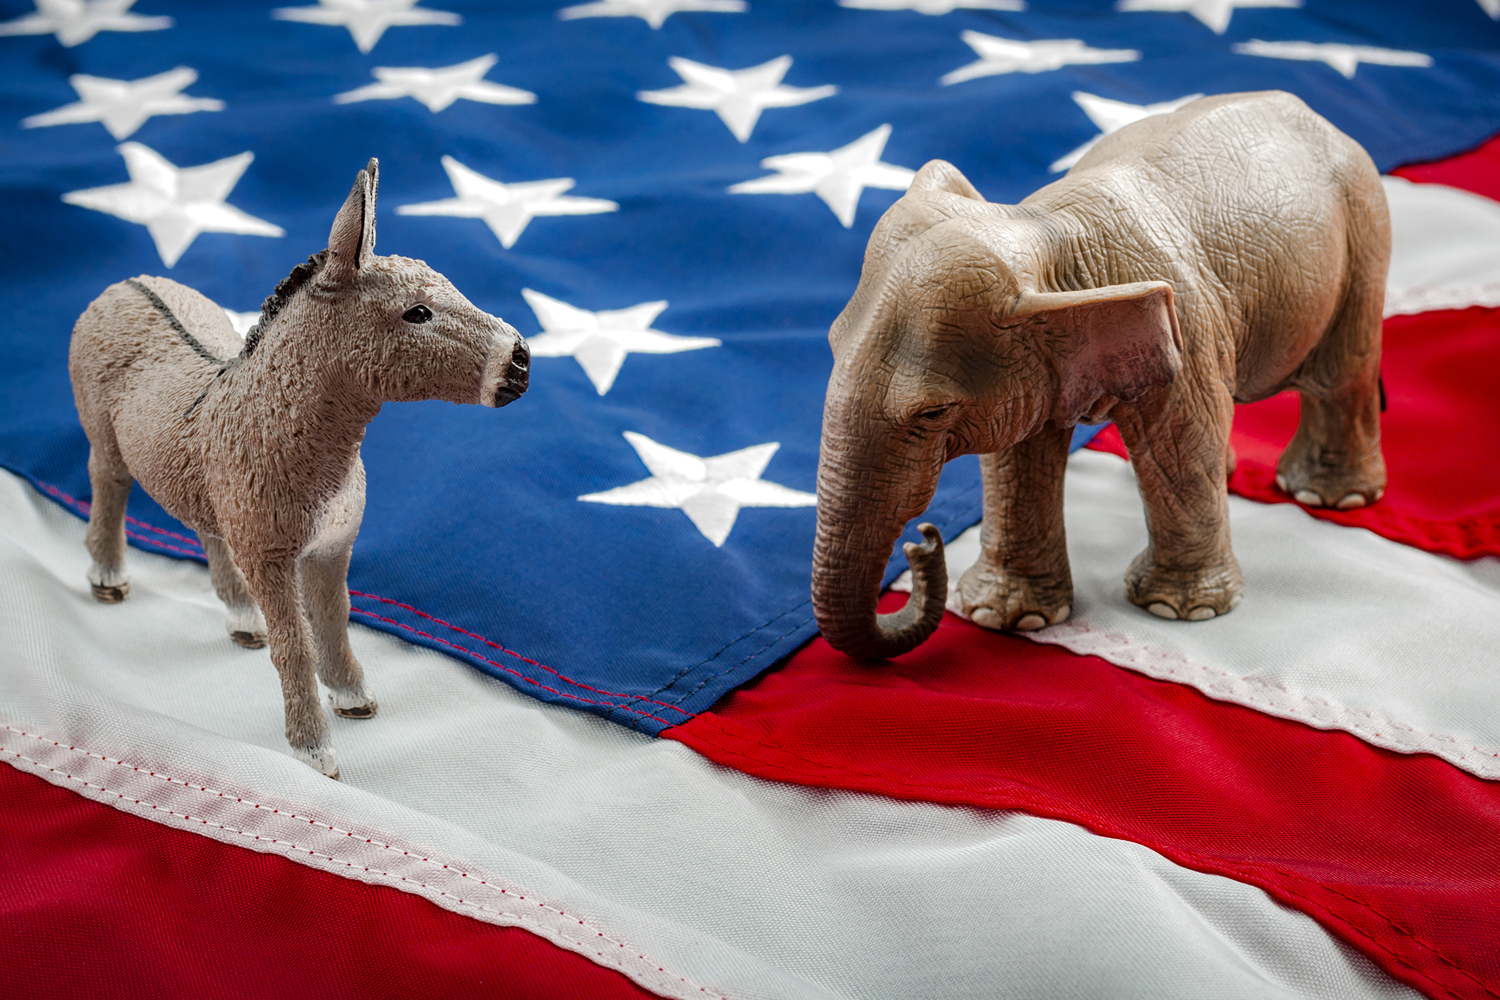 US elections represented by the Democrat donkey and the Republican Elephant